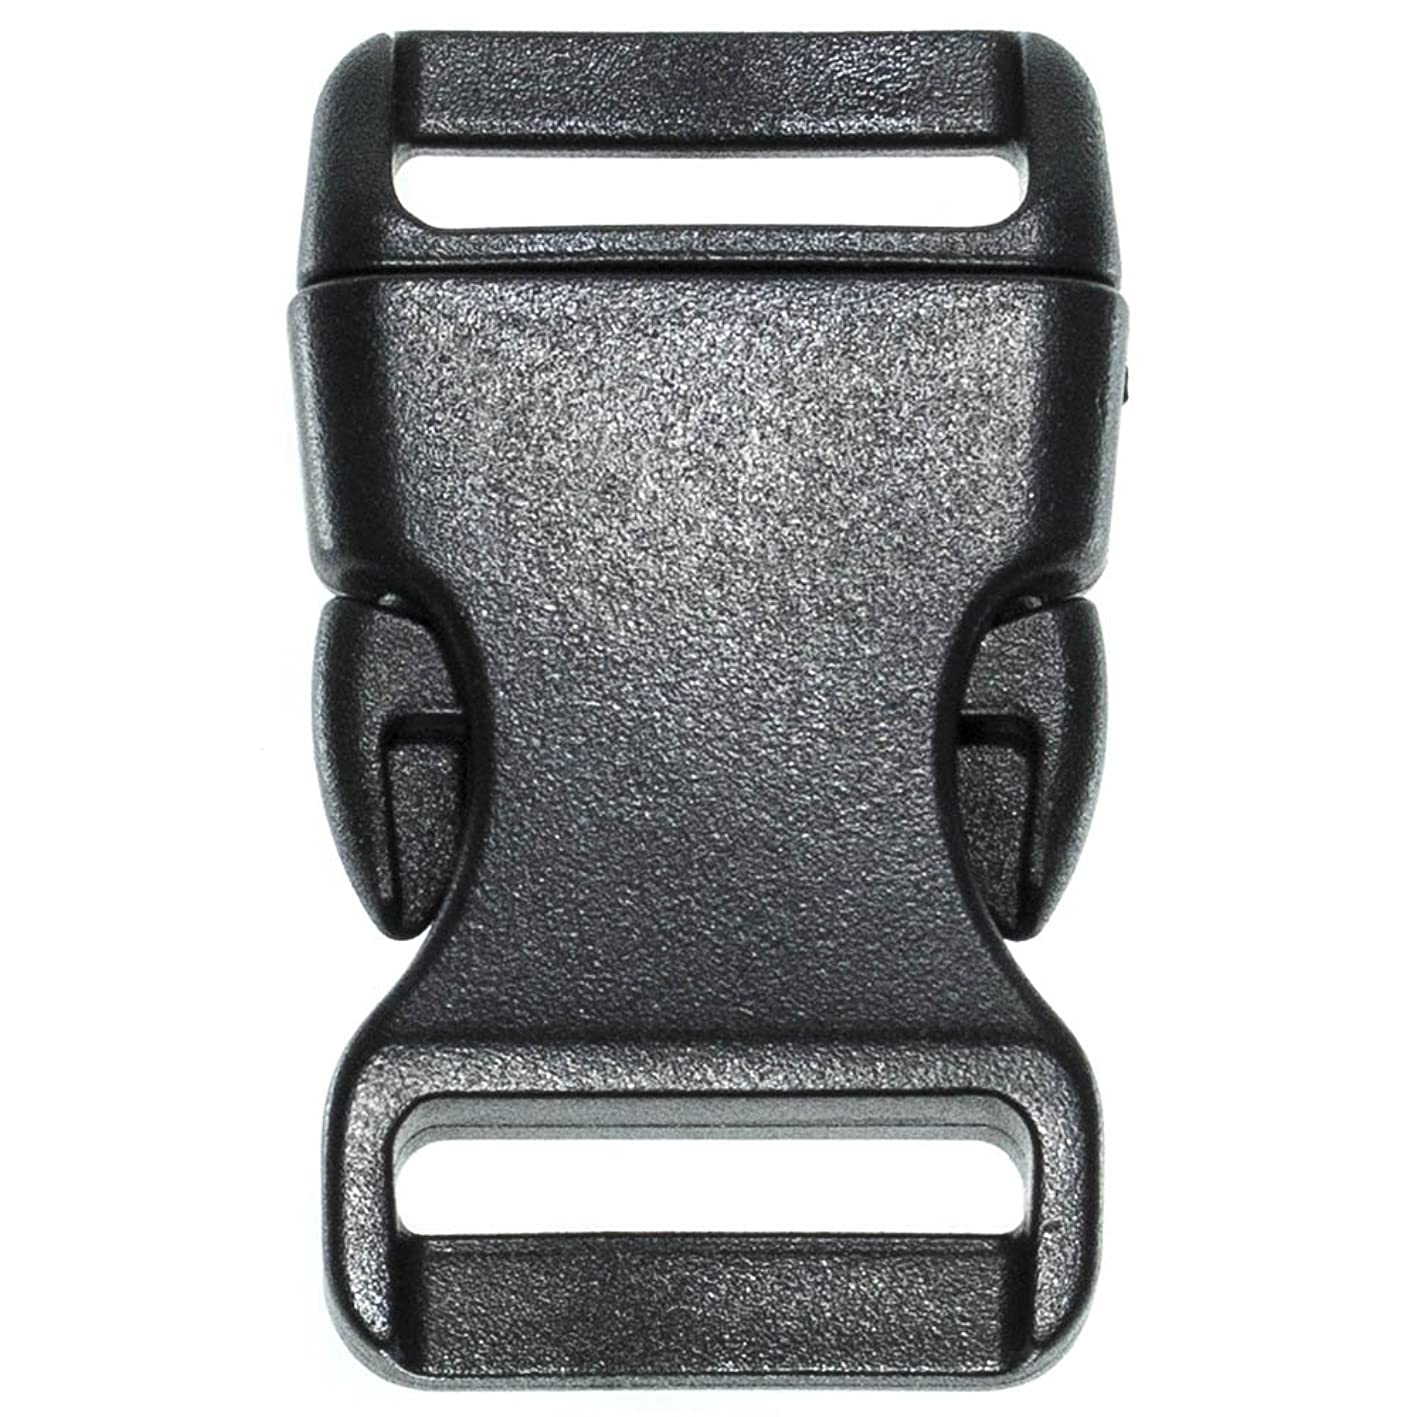 PARACORD PLANET Brand Contoured Side Release Black Buckle – Multiple Size and Quantity bmpihhkcnyw654